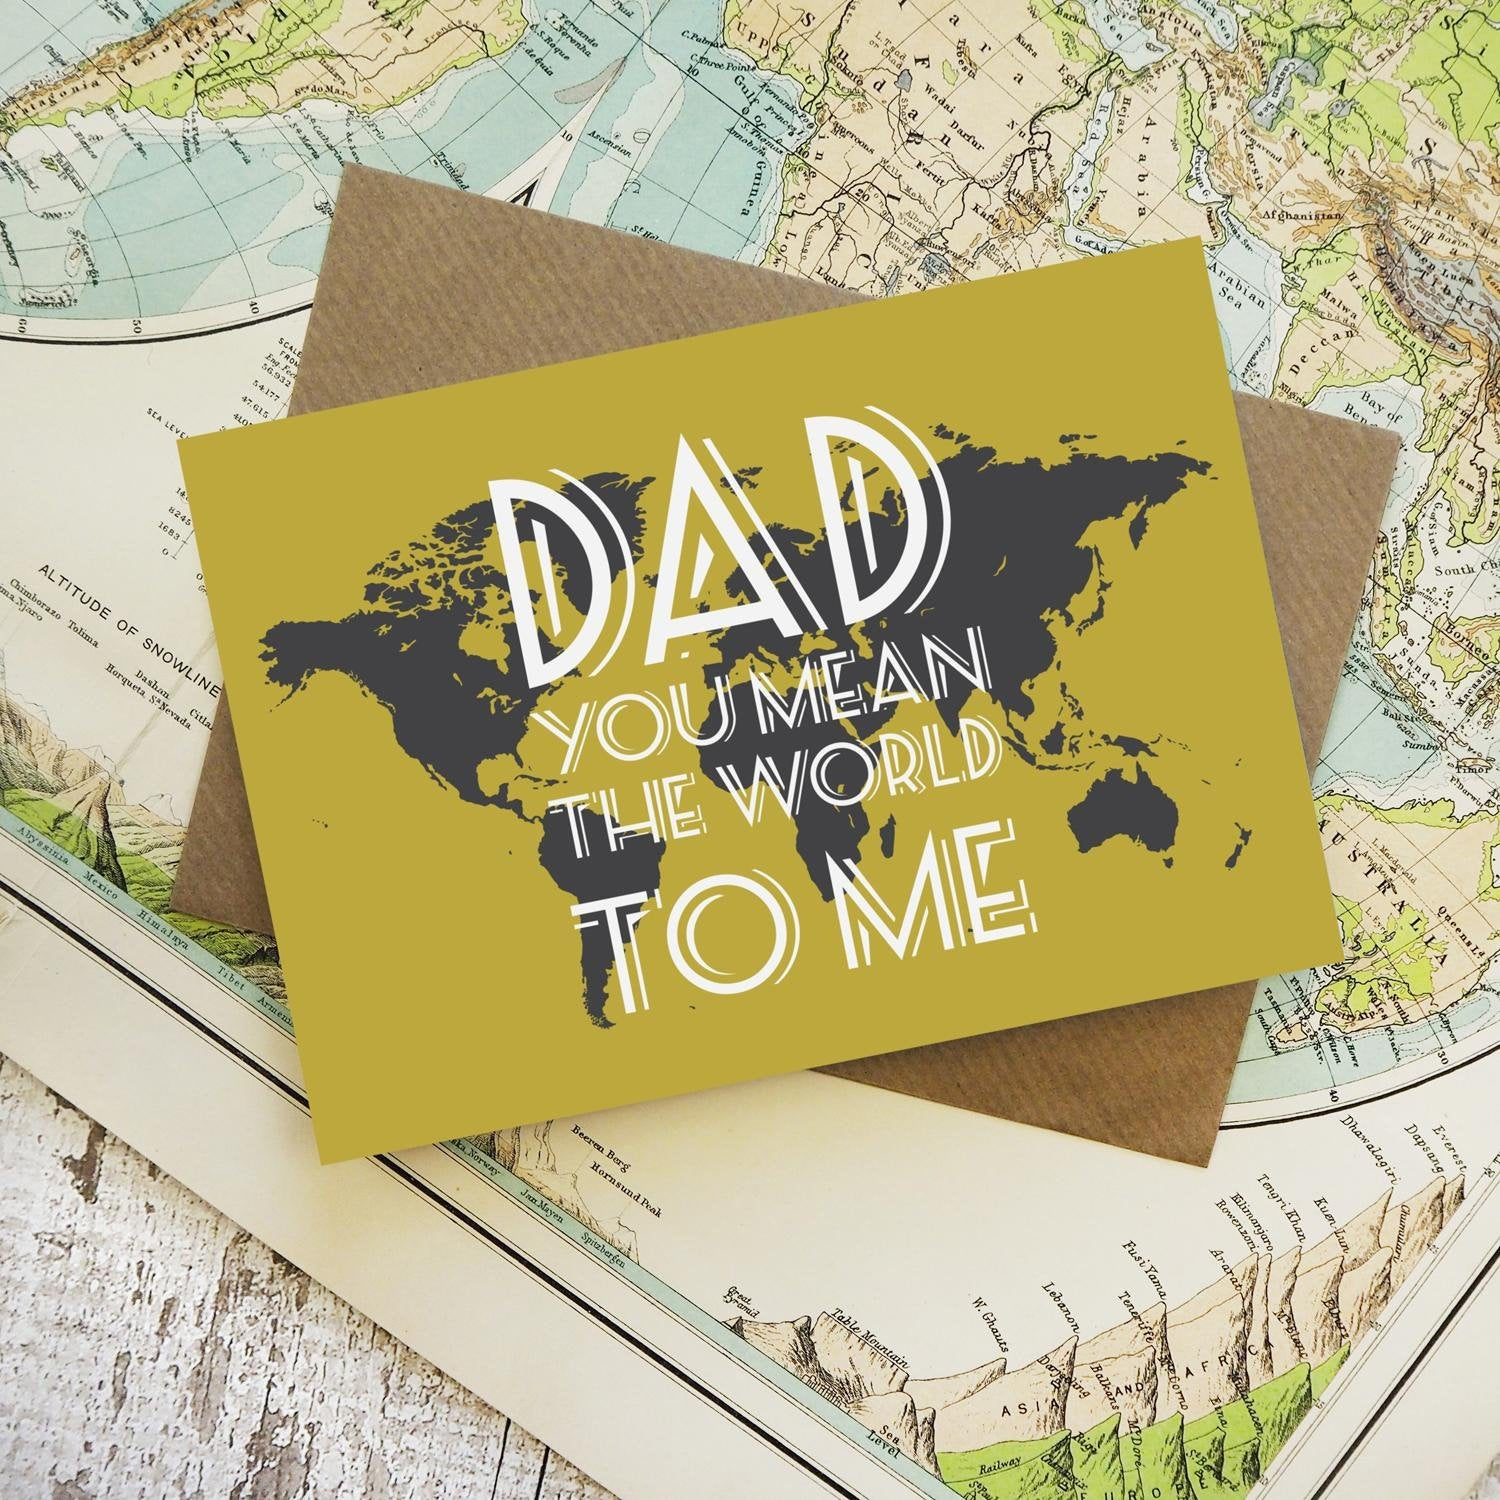 Dad, you mean the world to me - map greetings card